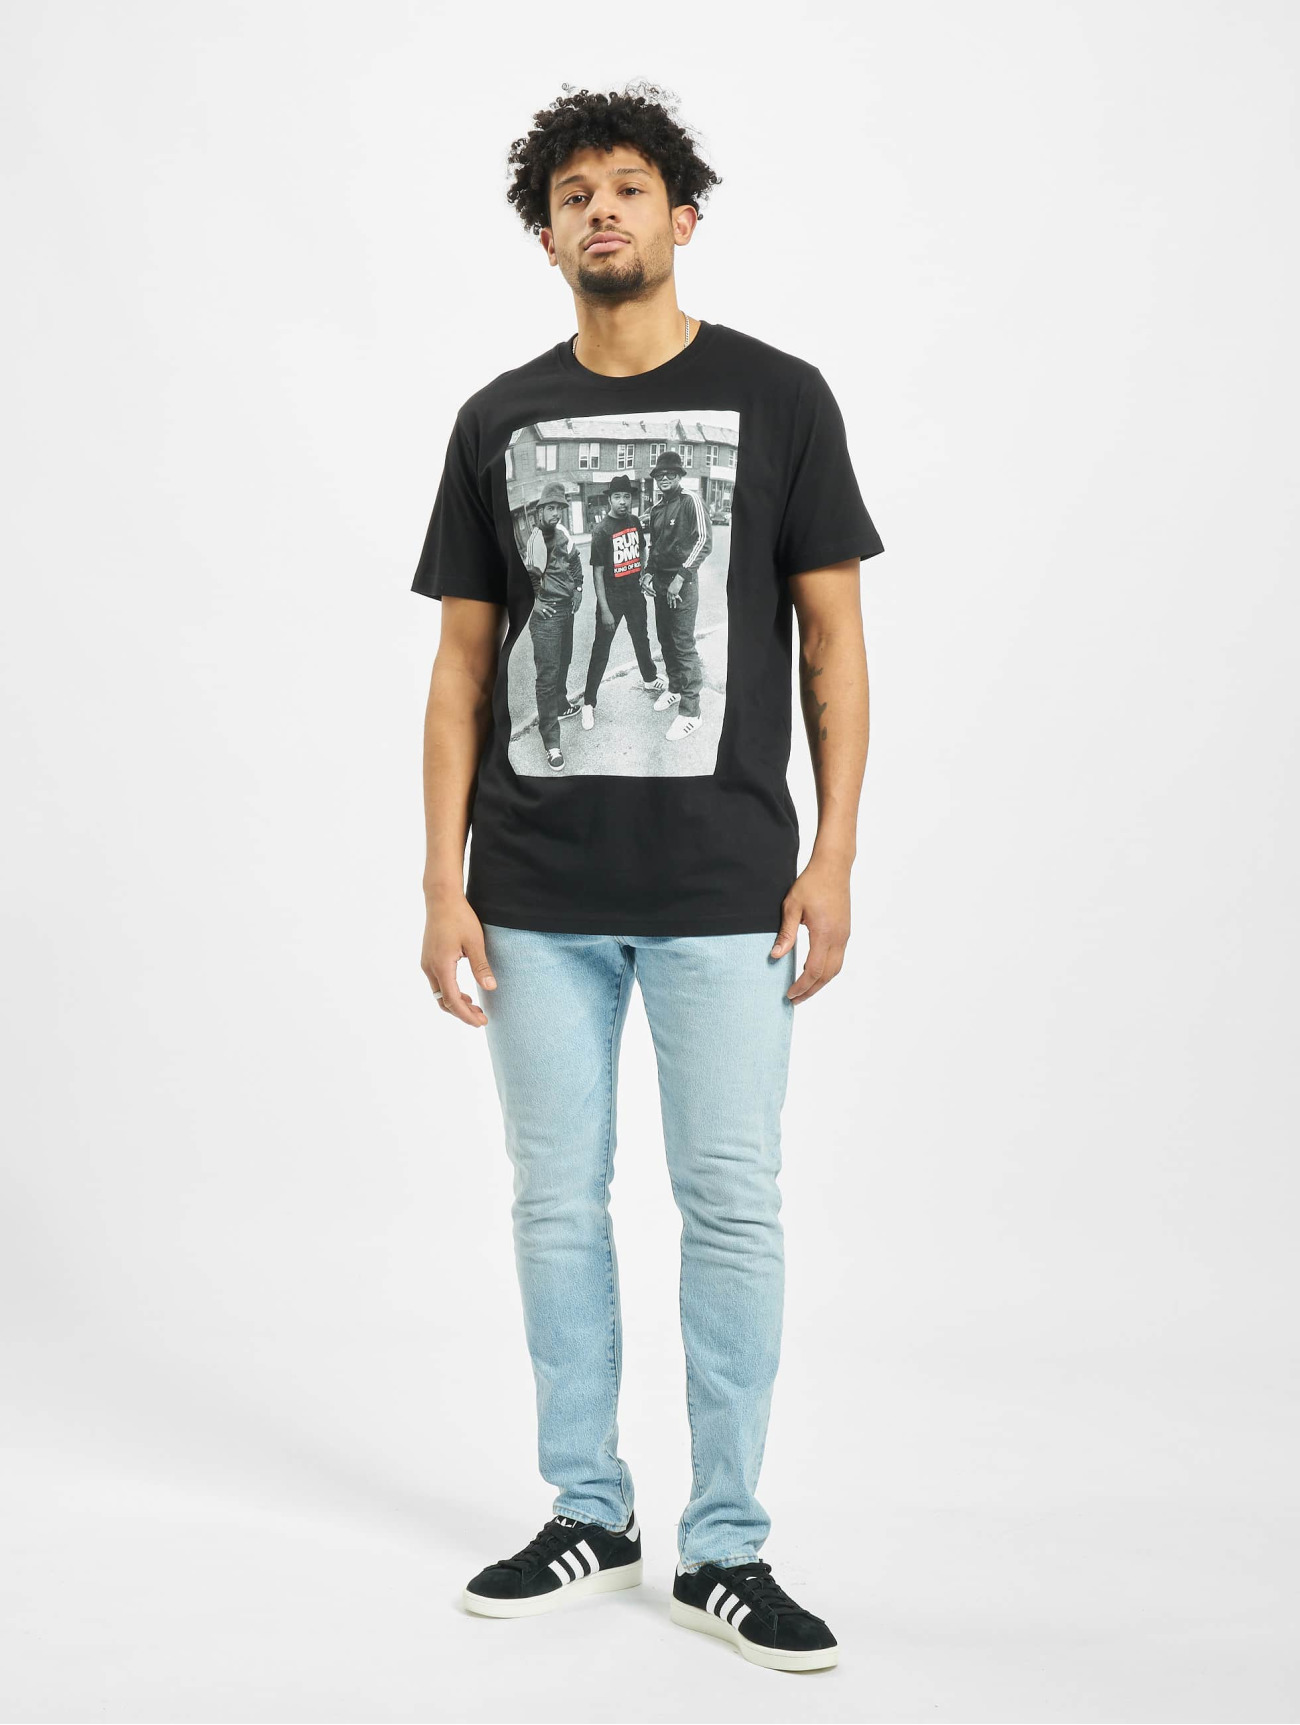 Mister Tee | Run DMC Kings Of Rock noir Homme T-Shirt 197315| Homme Hauts